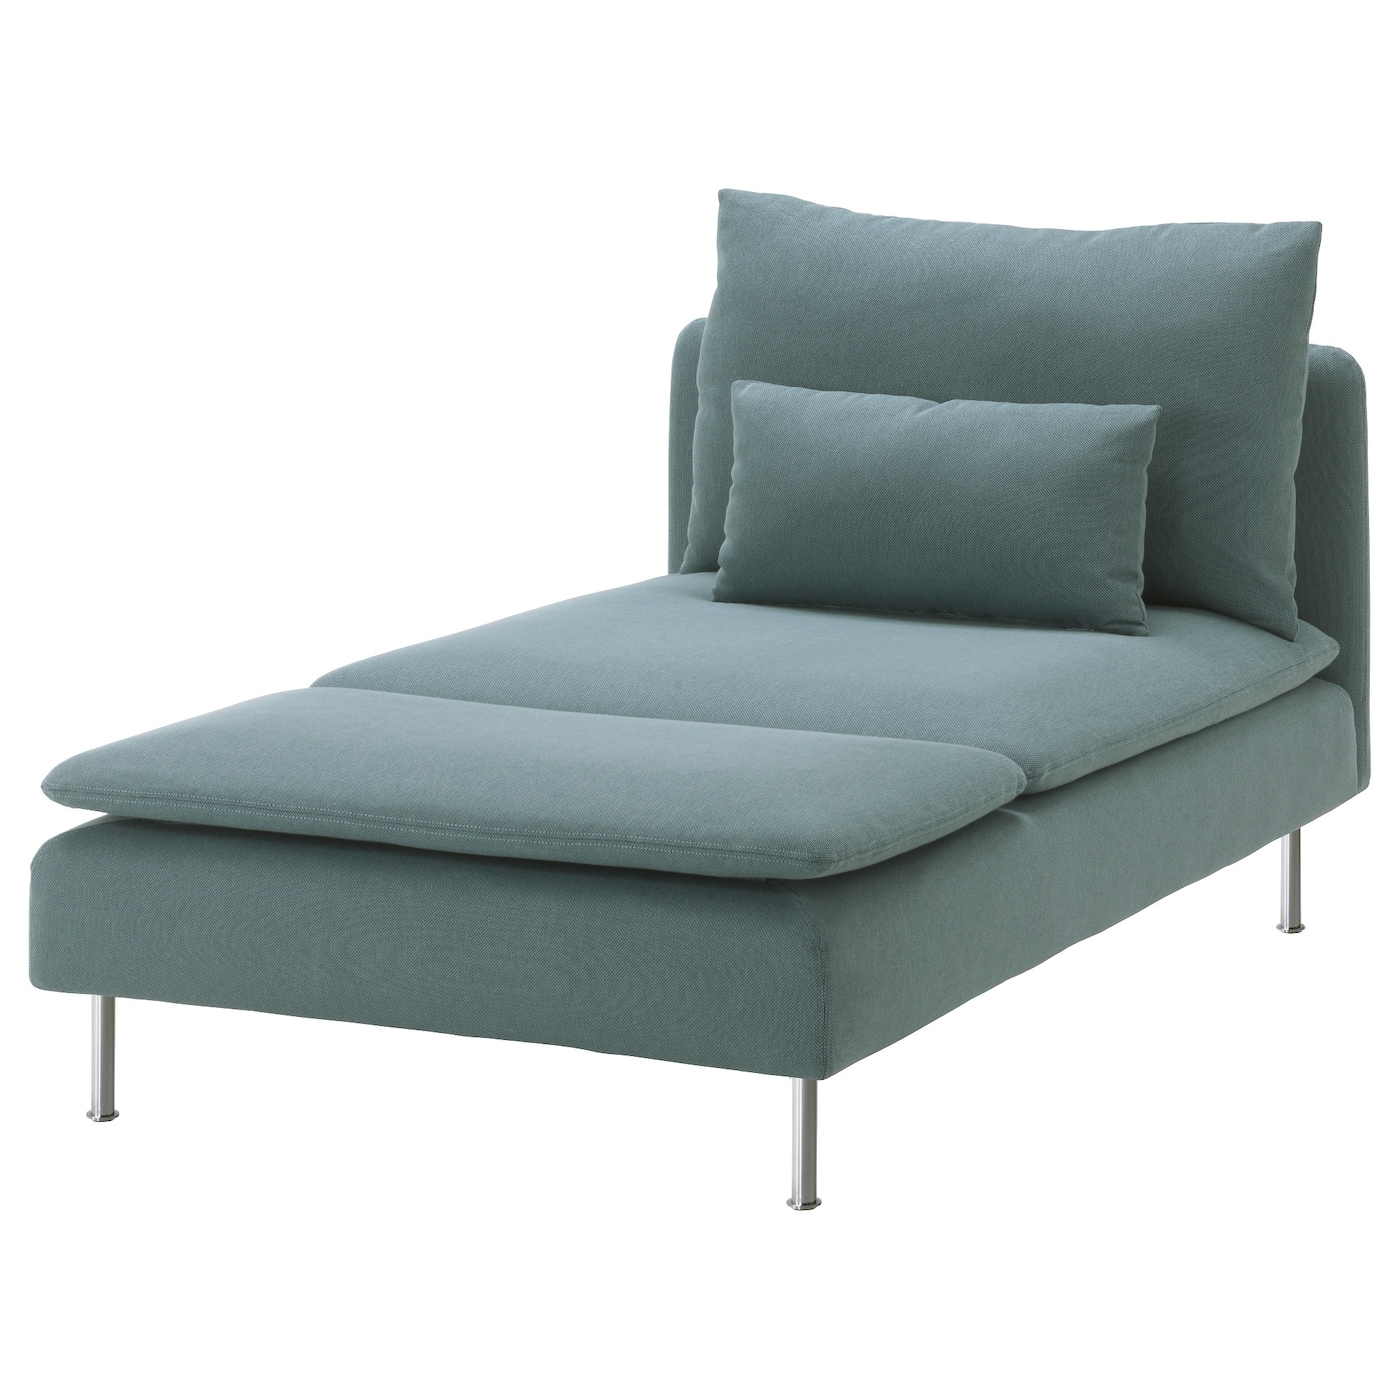 Recamiere chaiselongue  SÖDERHAMN Cover for chaise longue Finnsta turquoise - IKEA